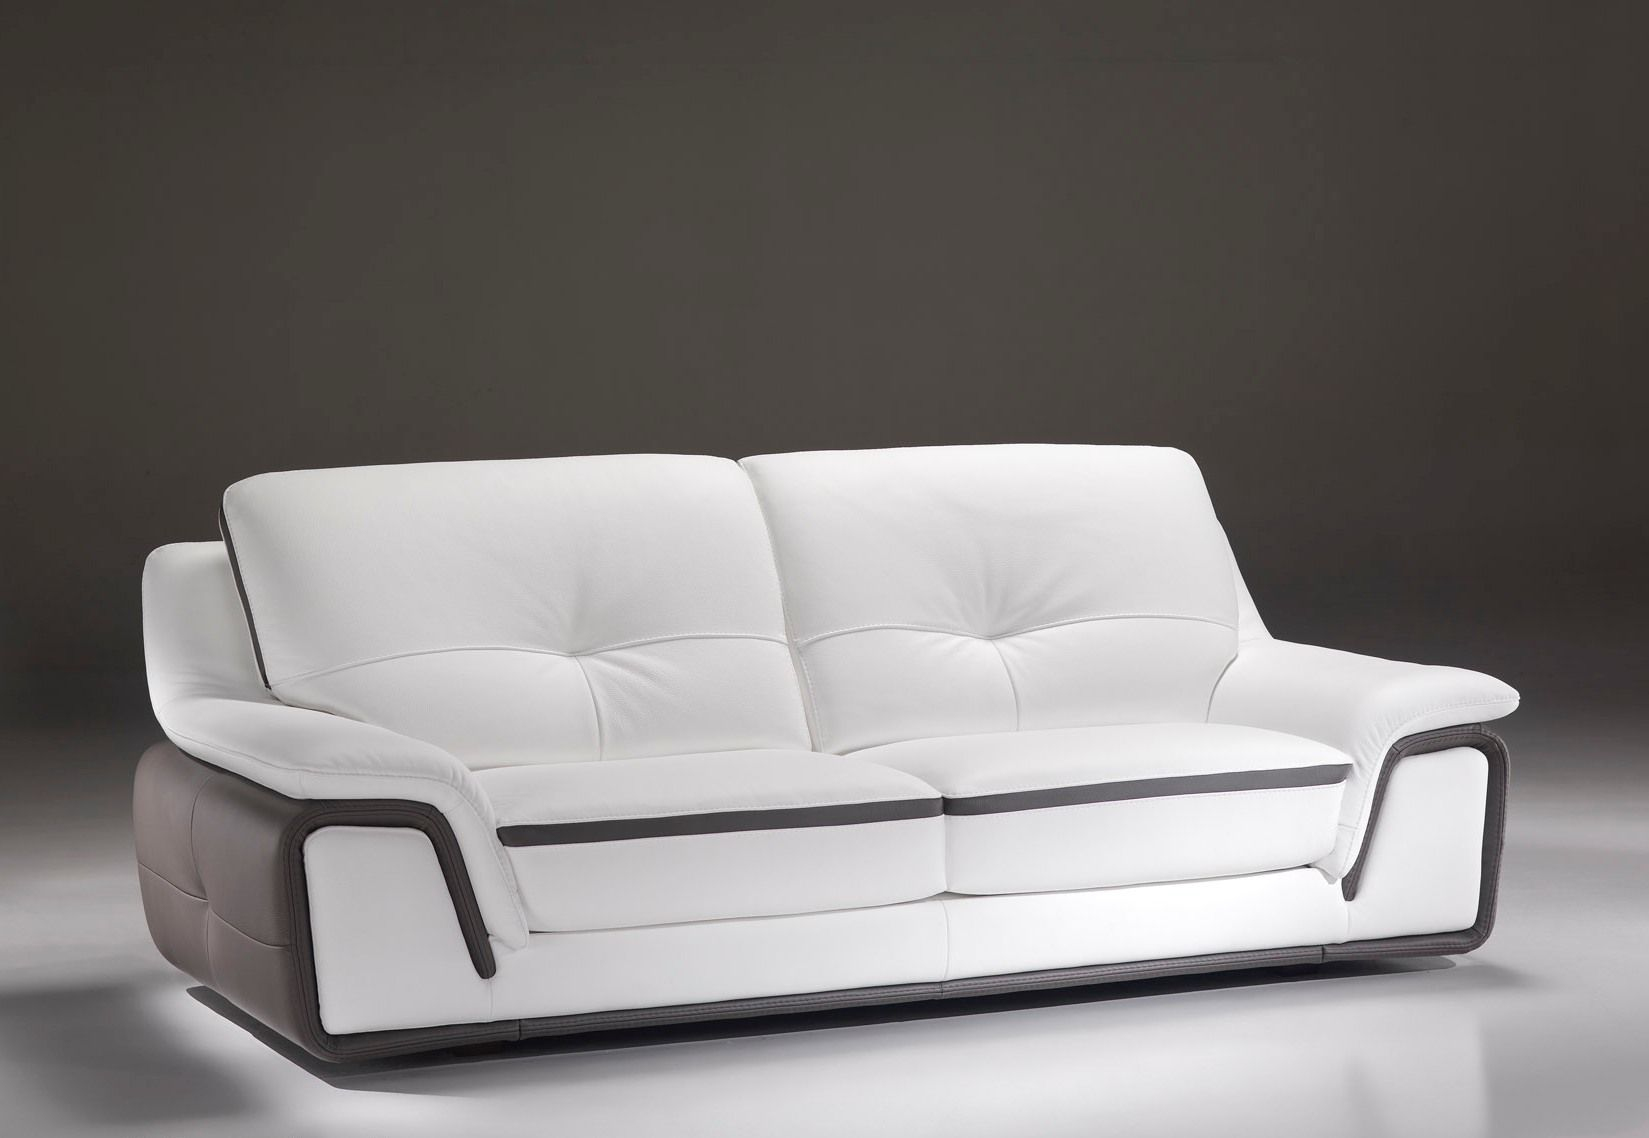 Canape Cuir Conforama Luxe Collection 46 Impressionnant Dimension Canapé 3 Places Conforama